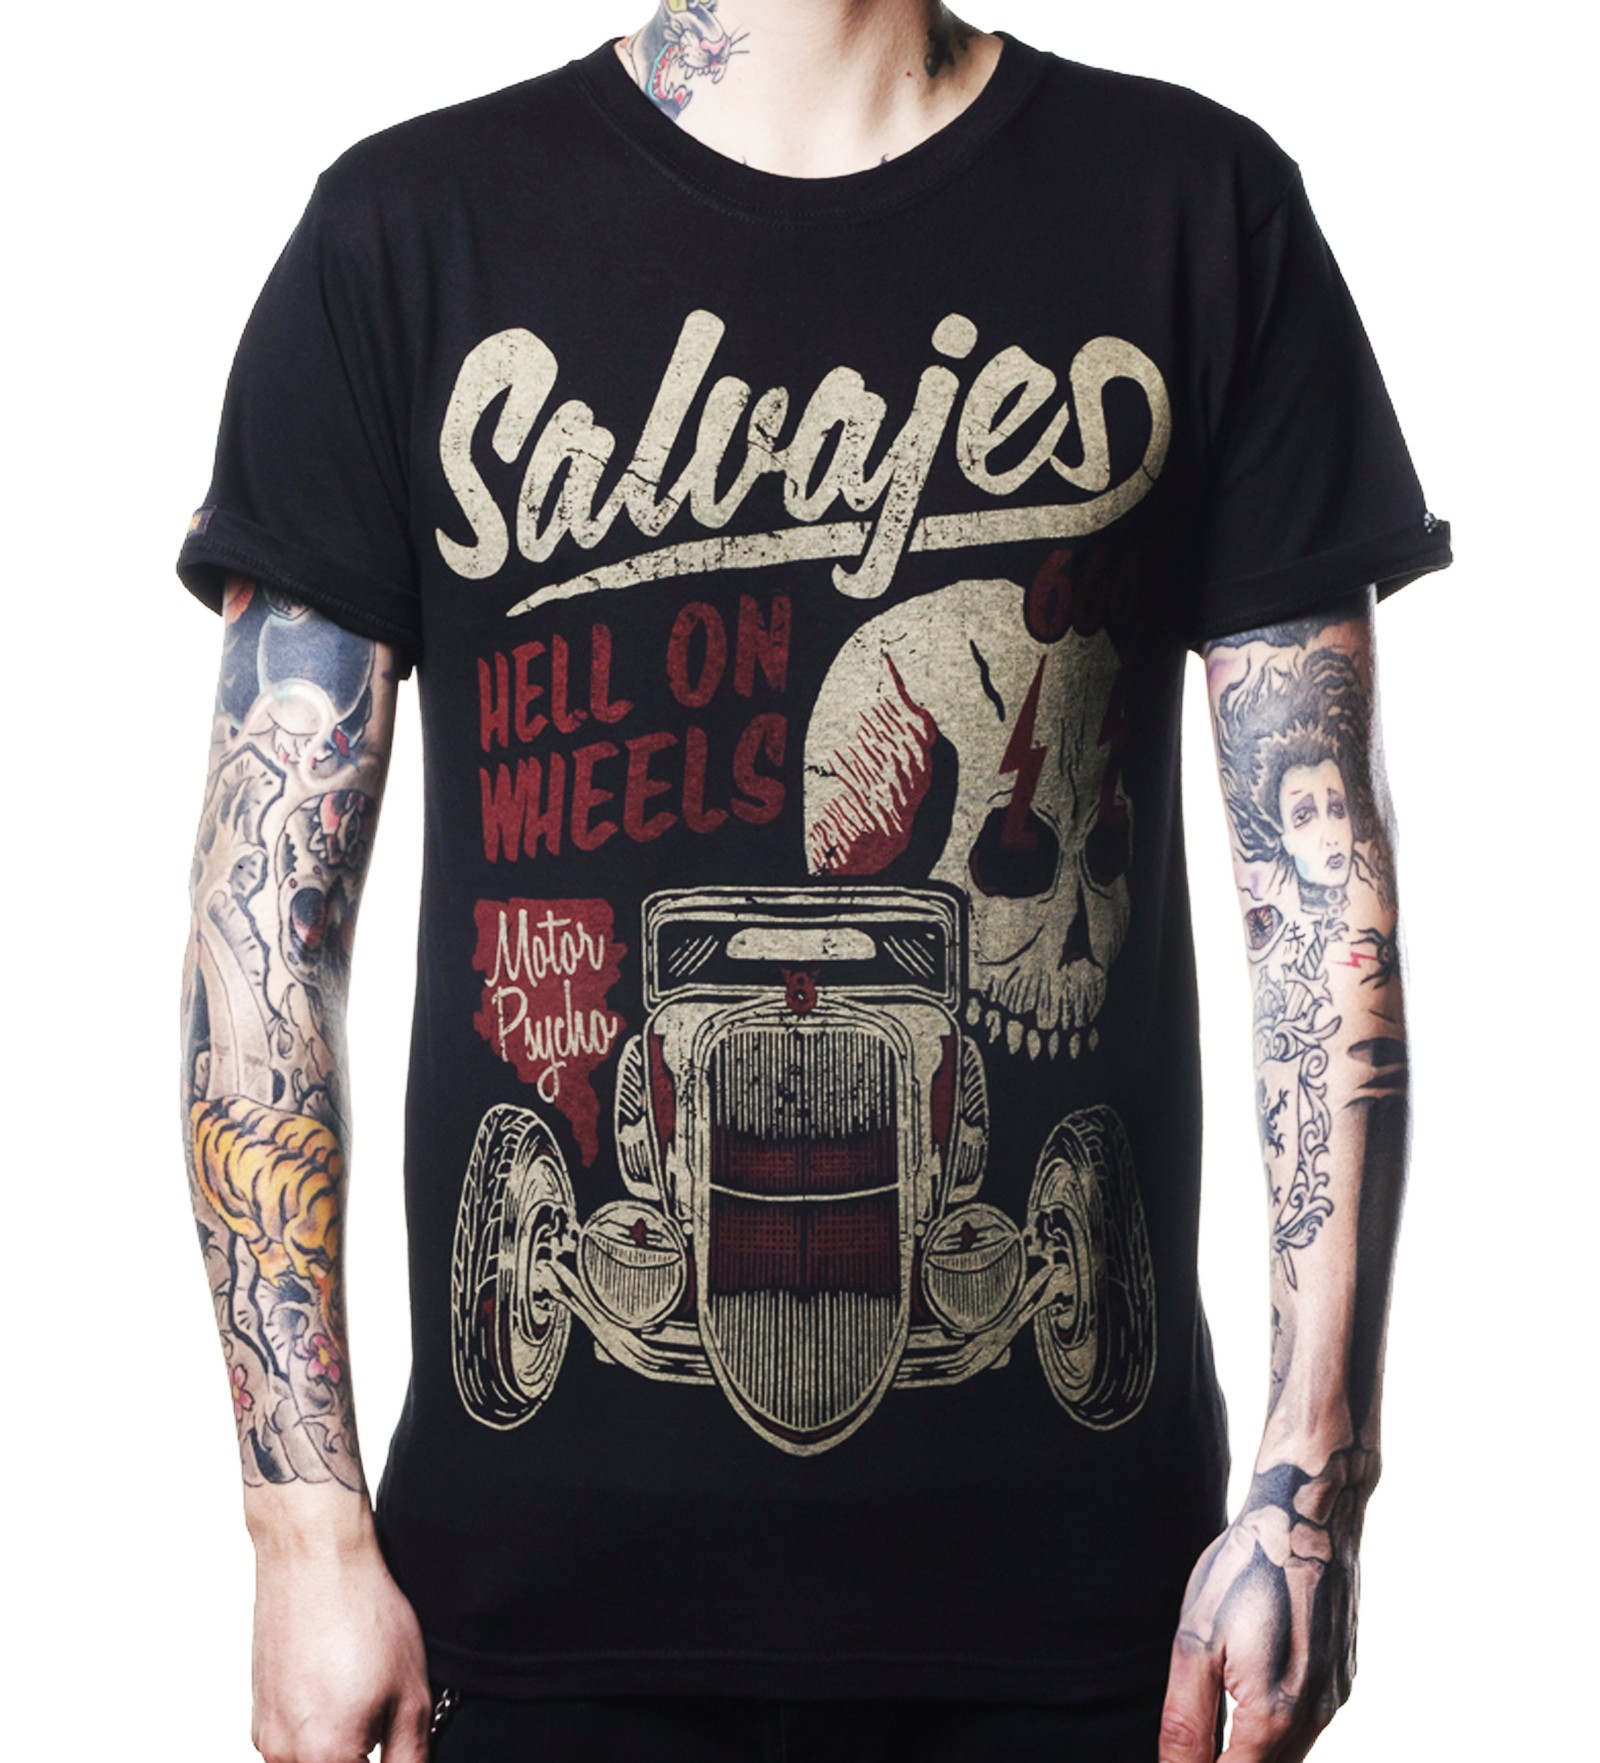 La Marca Del Diablo - Salvajes Hell on Wheels T-Shirt Front